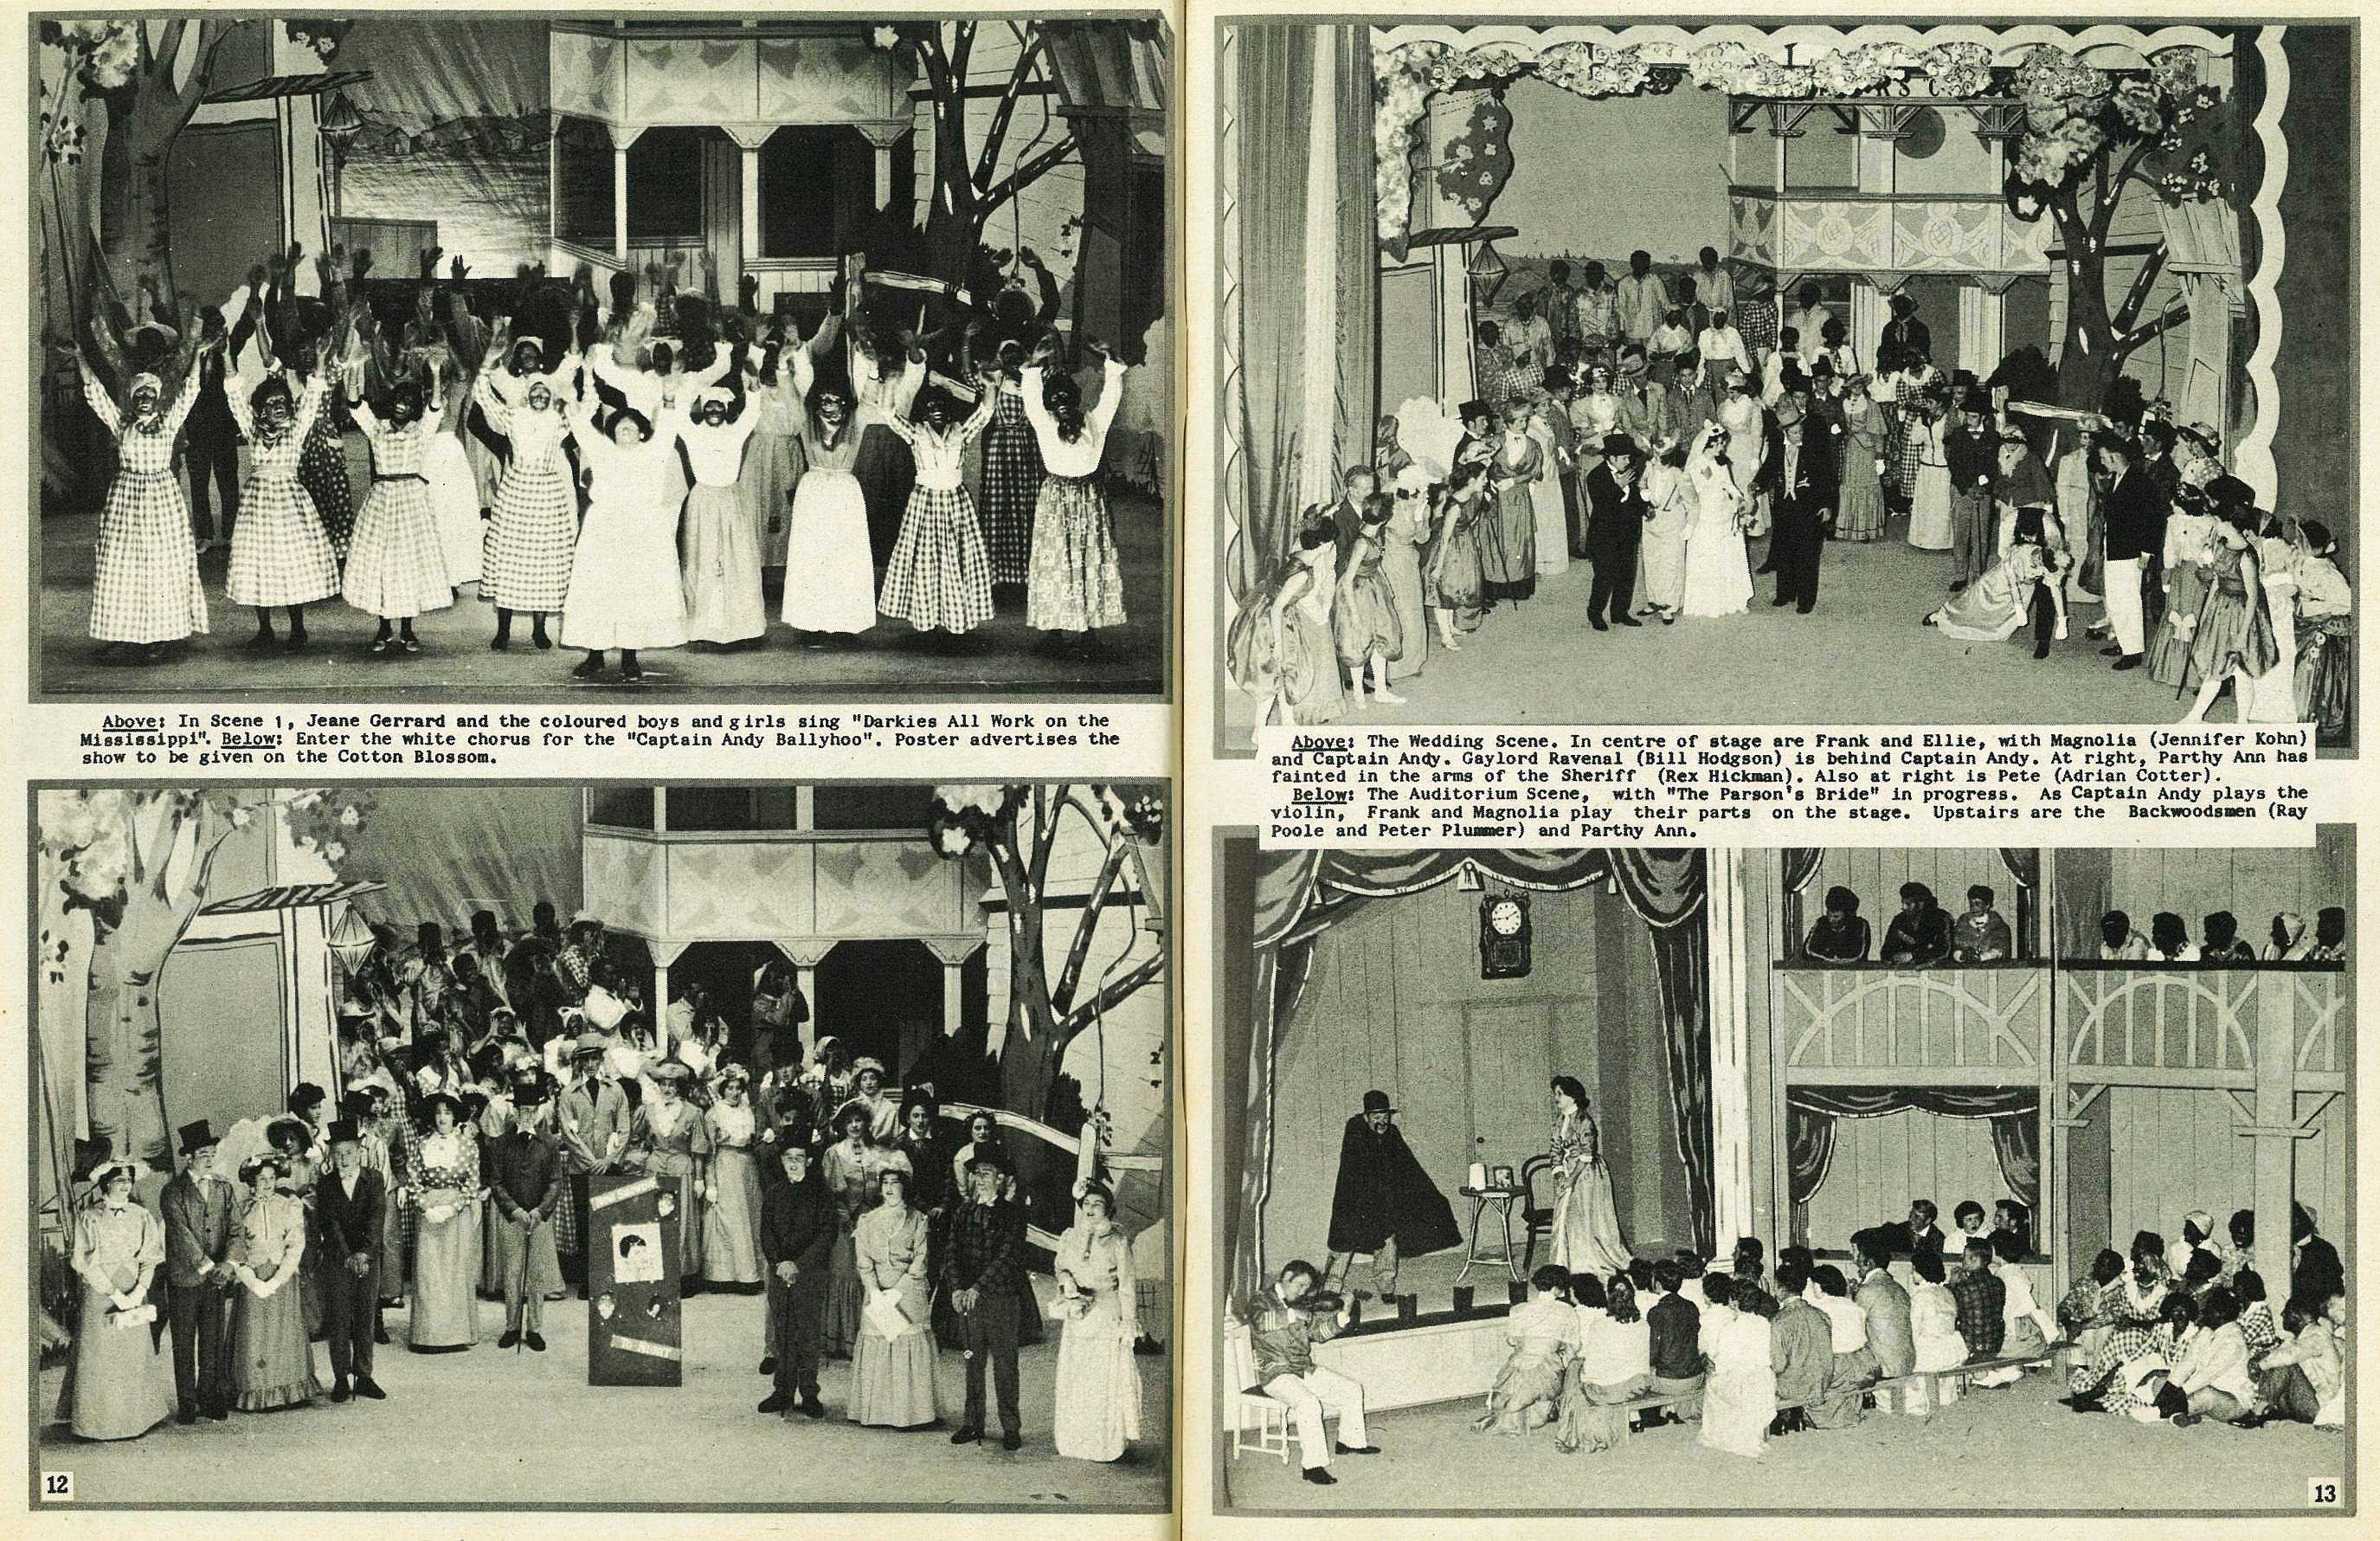 Show scenes page - 12